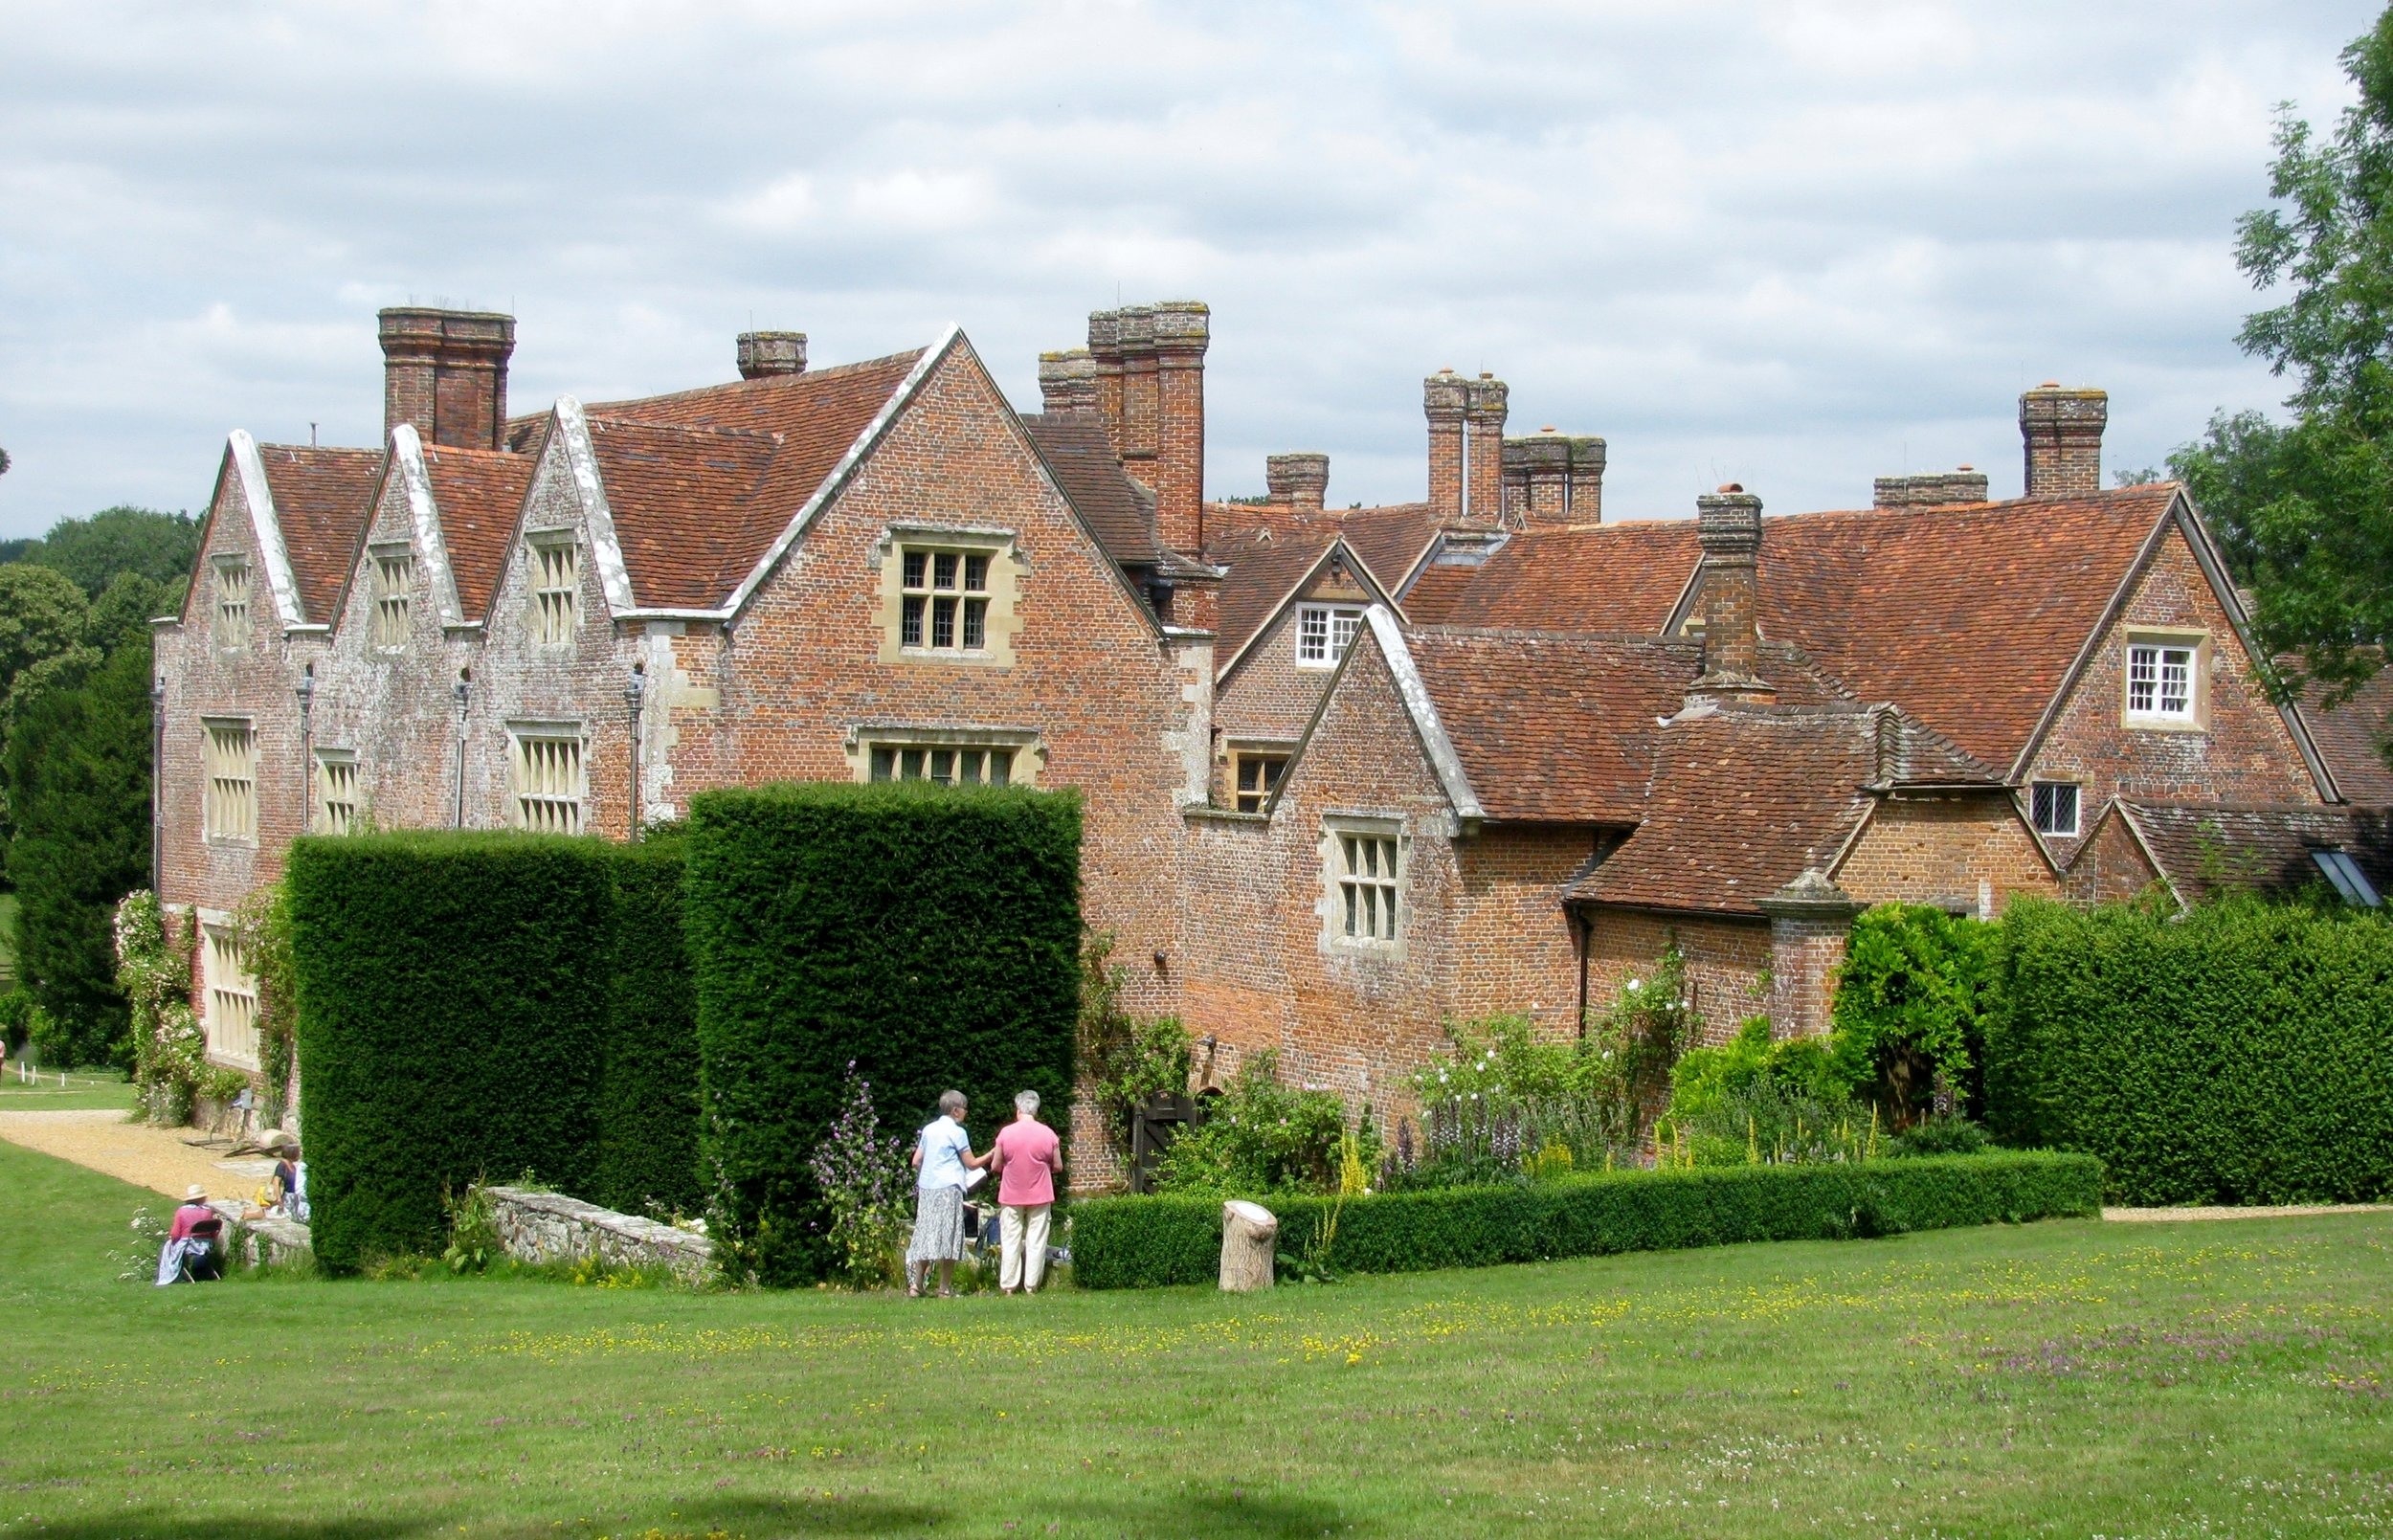 Fig. 4: Chawton House, side view.